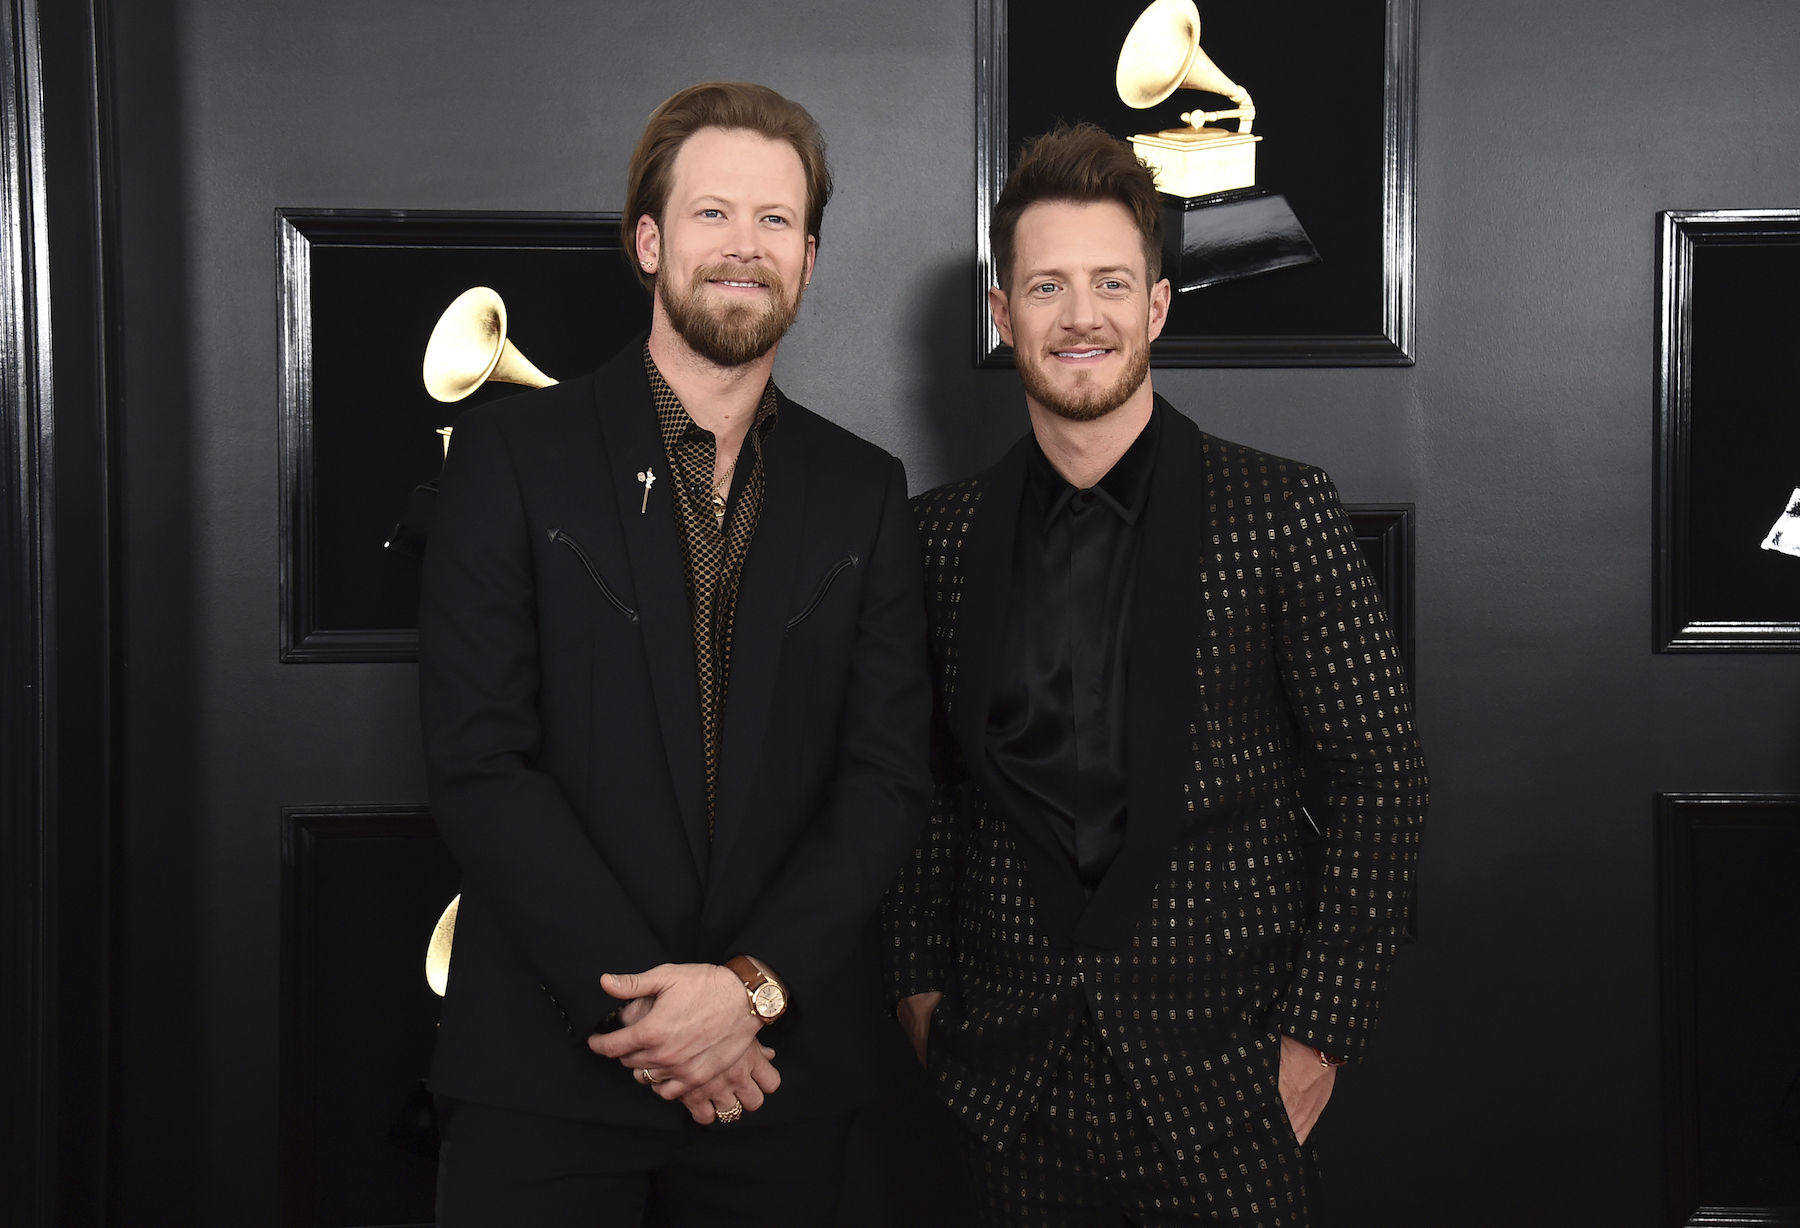 <div class='meta'><div class='origin-logo' data-origin='AP'></div><span class='caption-text' data-credit='Jordan Strauss/Invision/AP'>Brian Kelley, left, and Tyler Hubbard of Florida Georgia Line arrive at the 61st annual Grammy Awards at the Staples Center on Sunday, Feb. 10, 2019, in Los Angeles.</span></div>